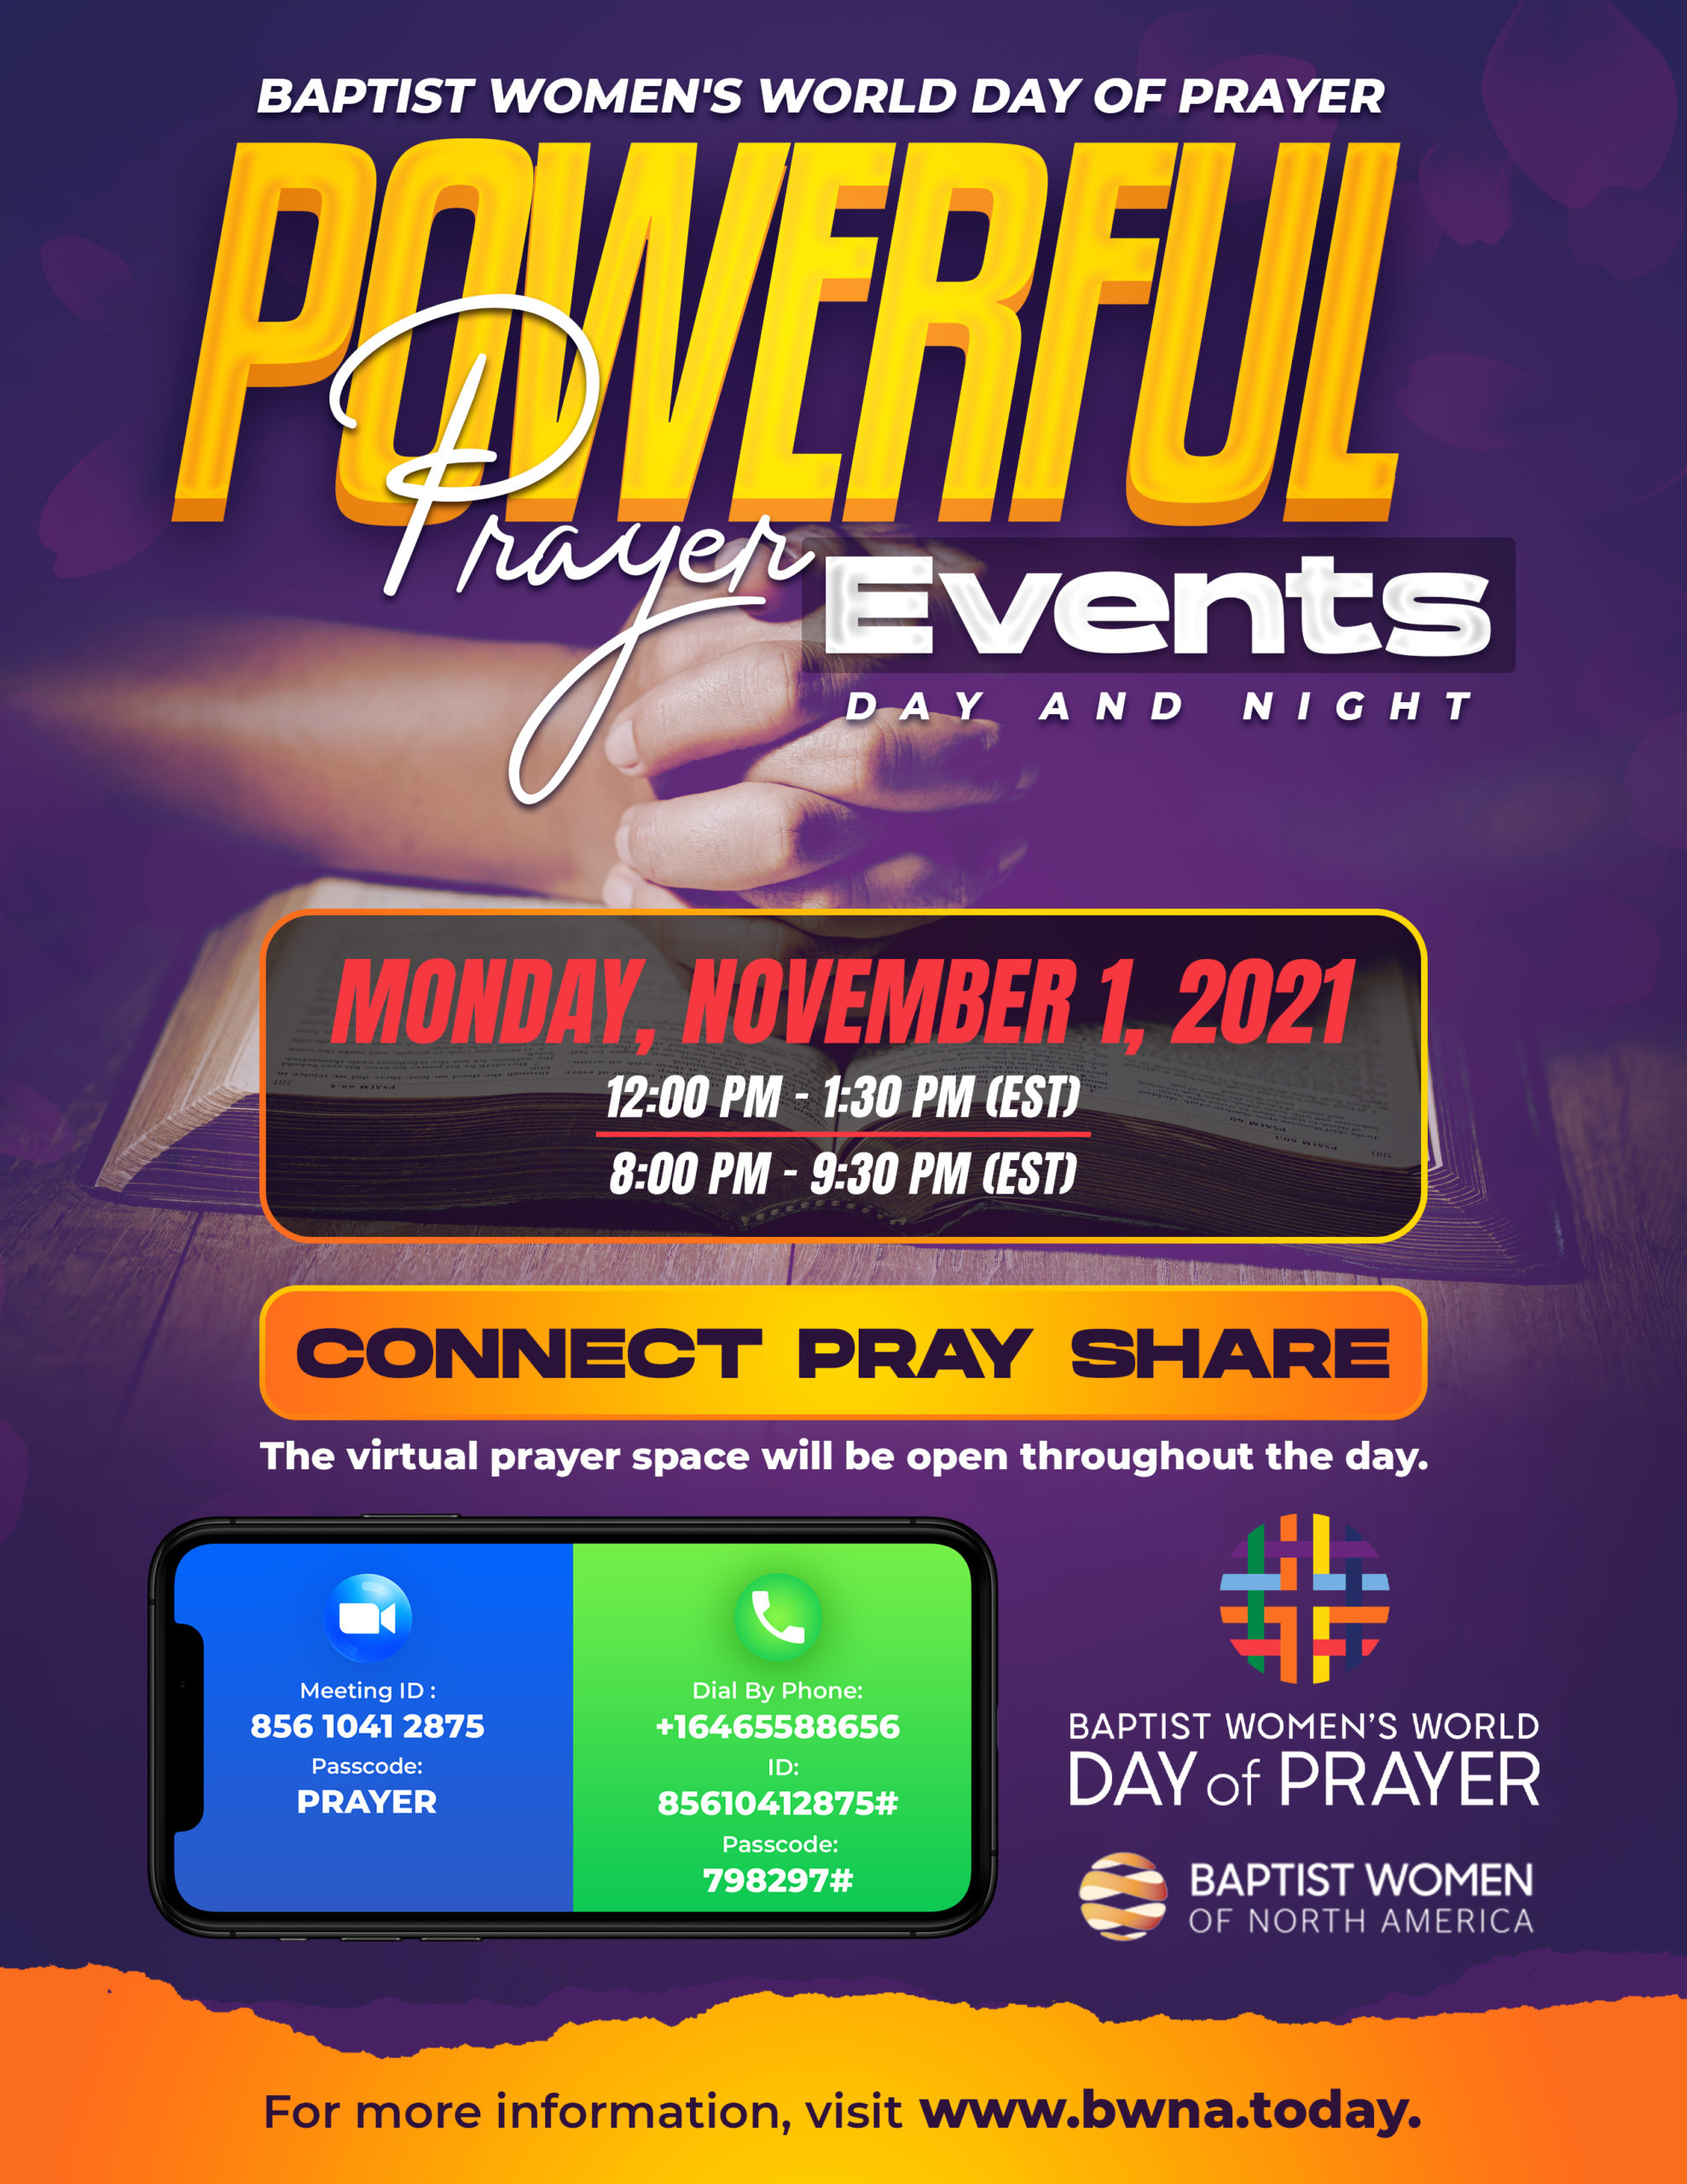 BWNA Day of Prayer Events 2021